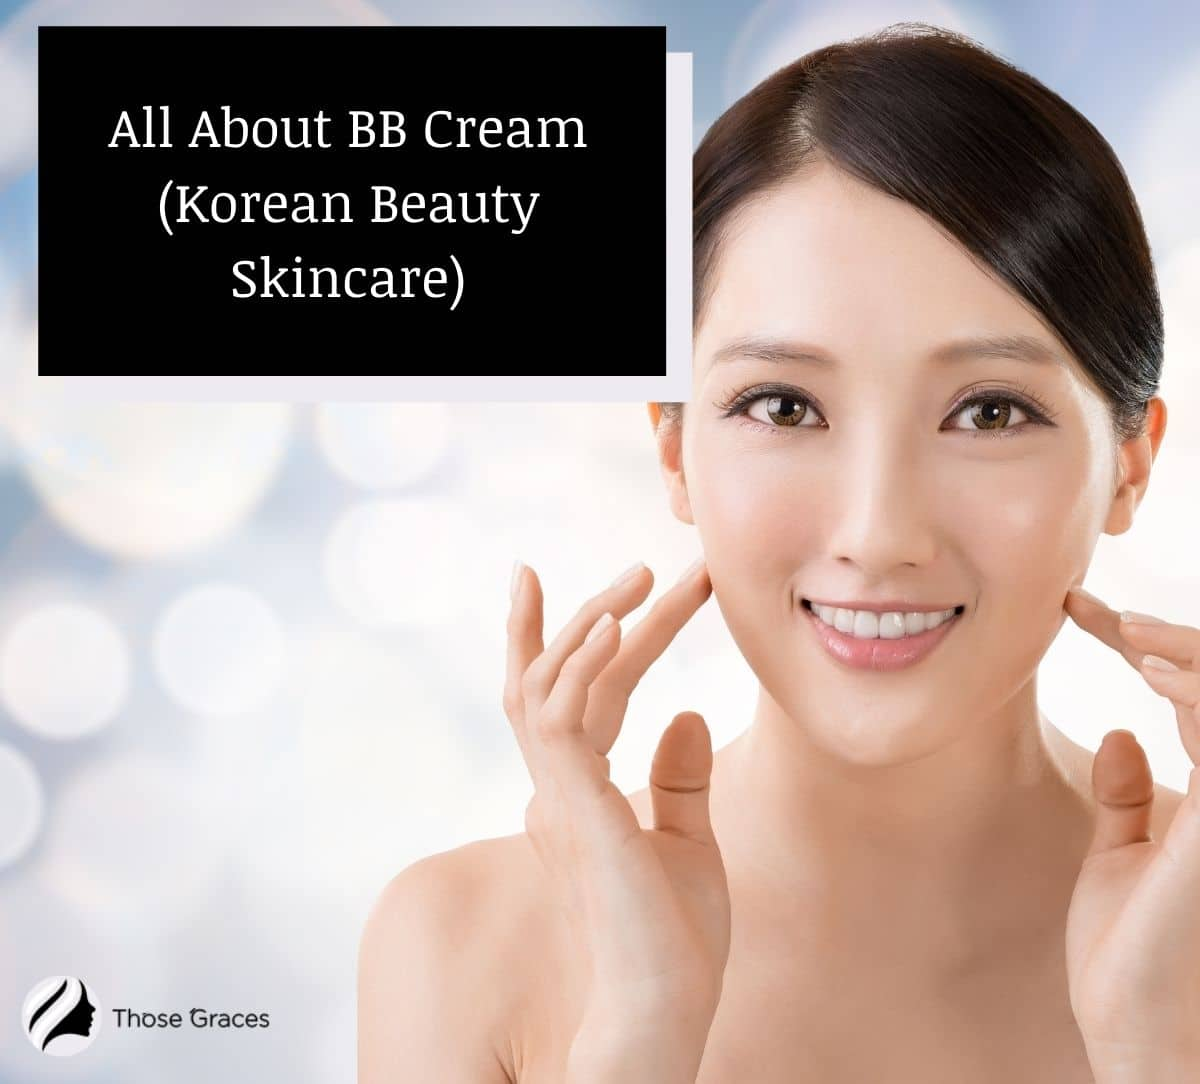 A Korean lady with a very flawless face. Do Koreans wear BB cream to achieve it?